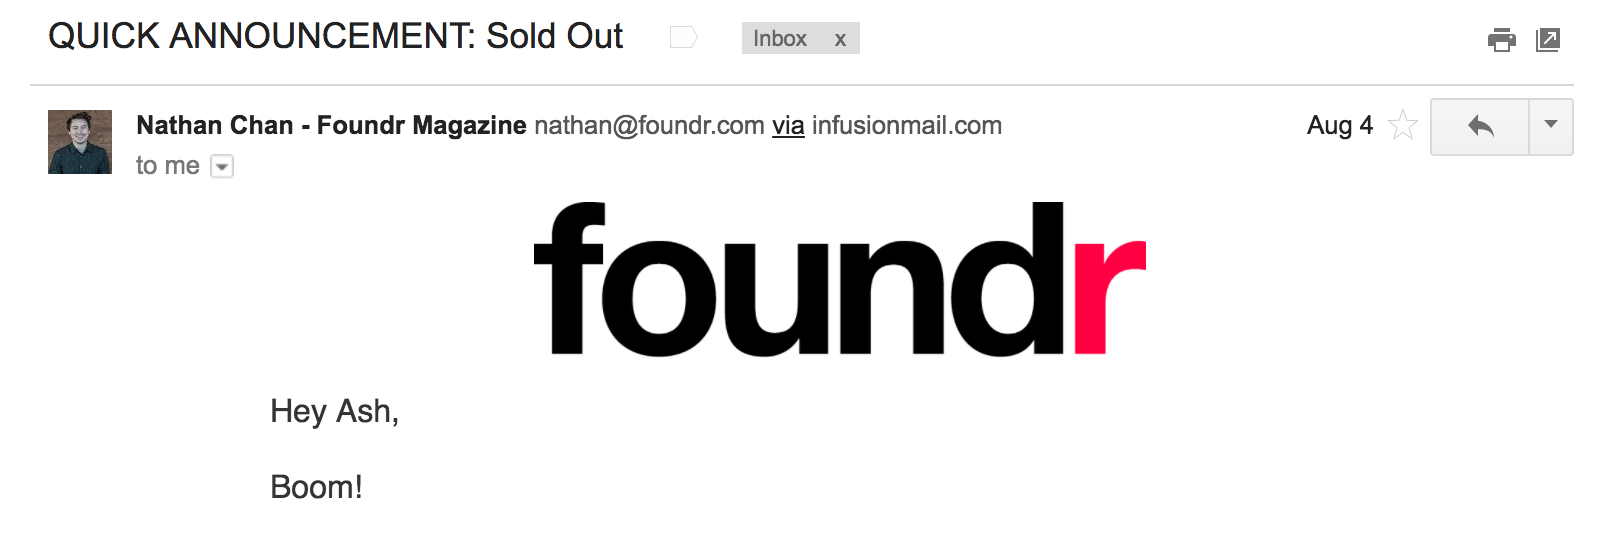 foundr email subject example